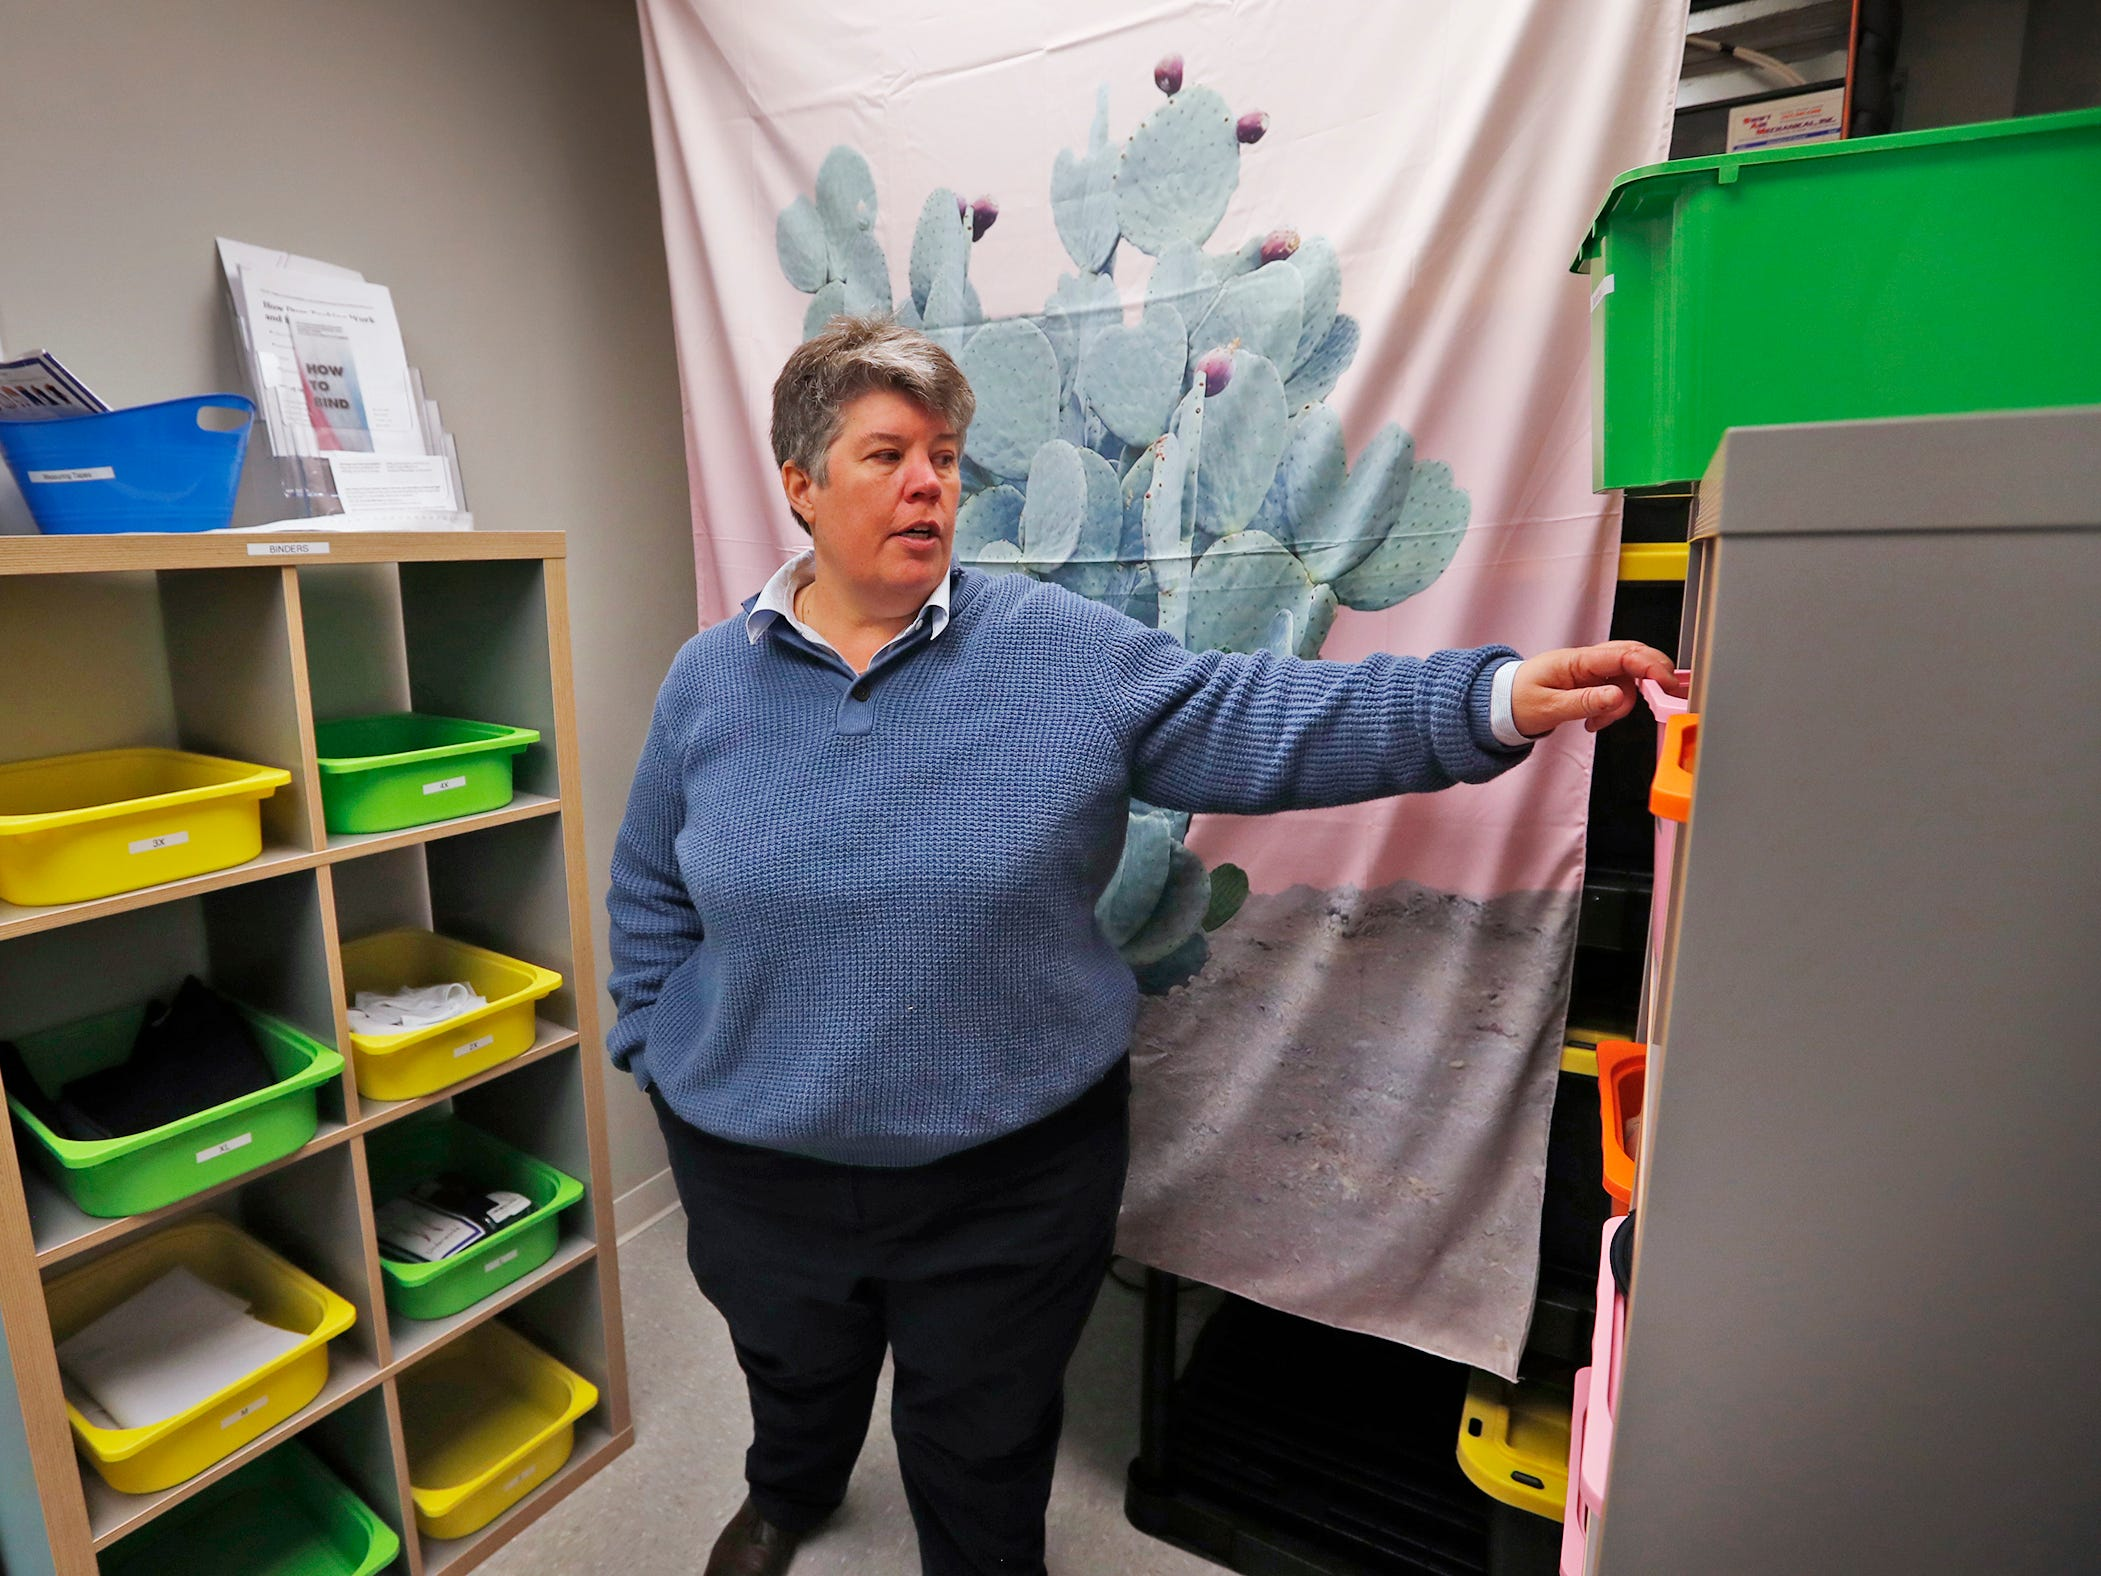 Indiana Youth Group President and CEO Chris Paulsen shows the new Transitional Apparel Room at the Indiana Youth Group center, Tuesday, Nov. 27, 2018.  The organization offers a safe drop-in center for LGBTQ+ youth, ages 12-20, and their straight ally friends, in the Indianapolis area.  Activities, tutoring, food and clothes pantries are included in the center.